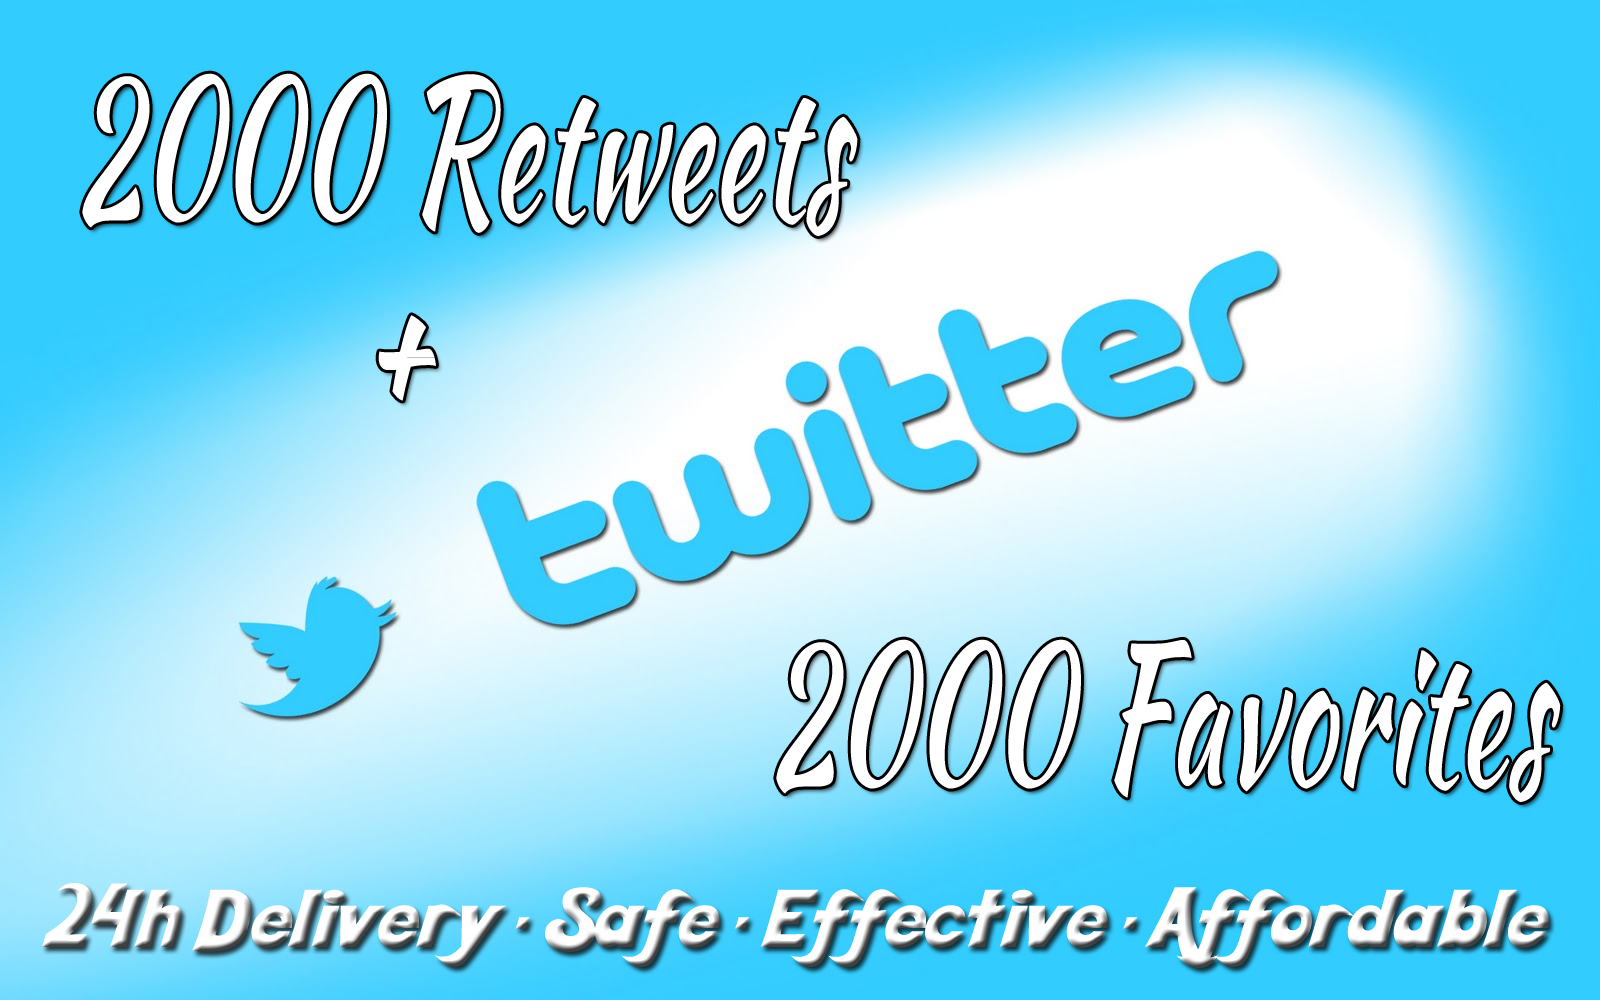 Buy retweets and favorites